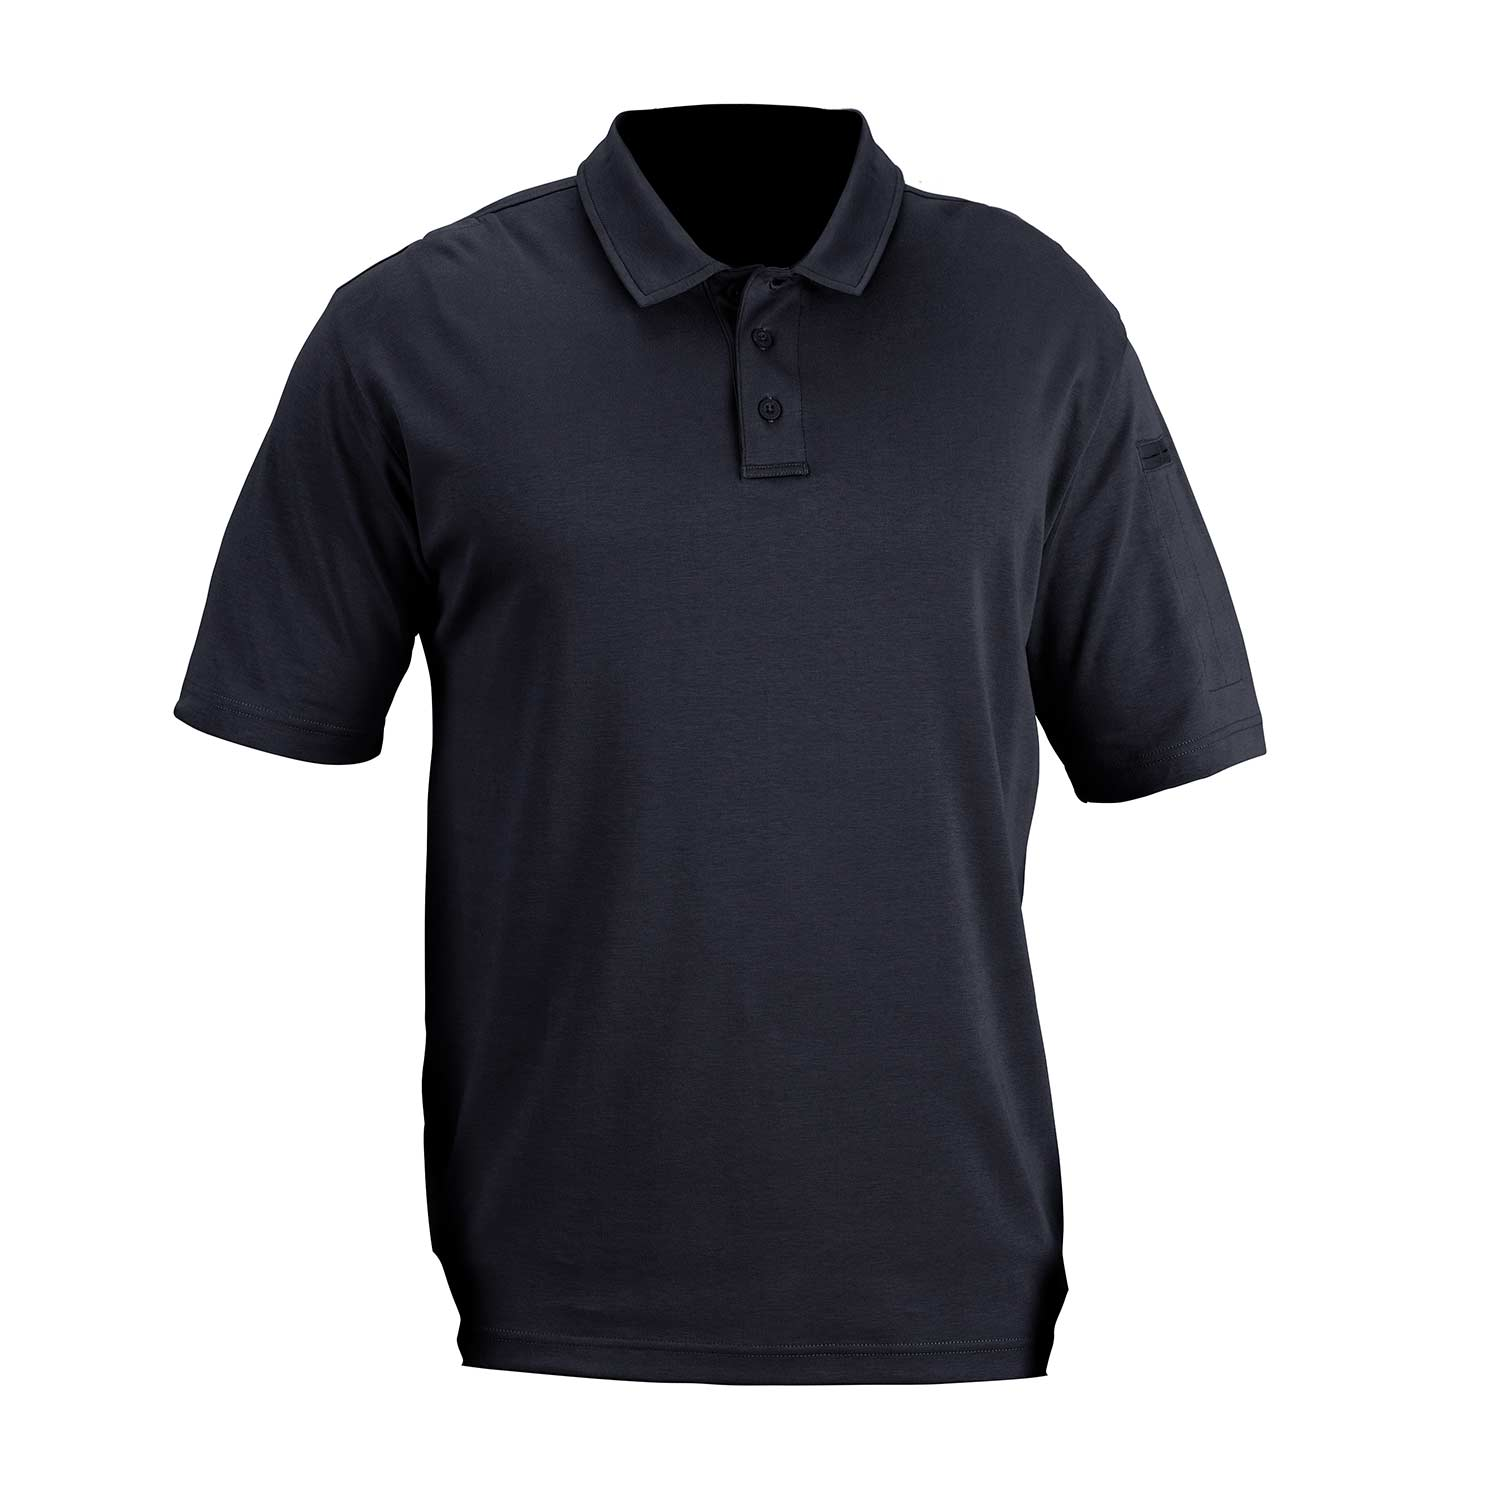 PROPPER Uniform Cotton Polo